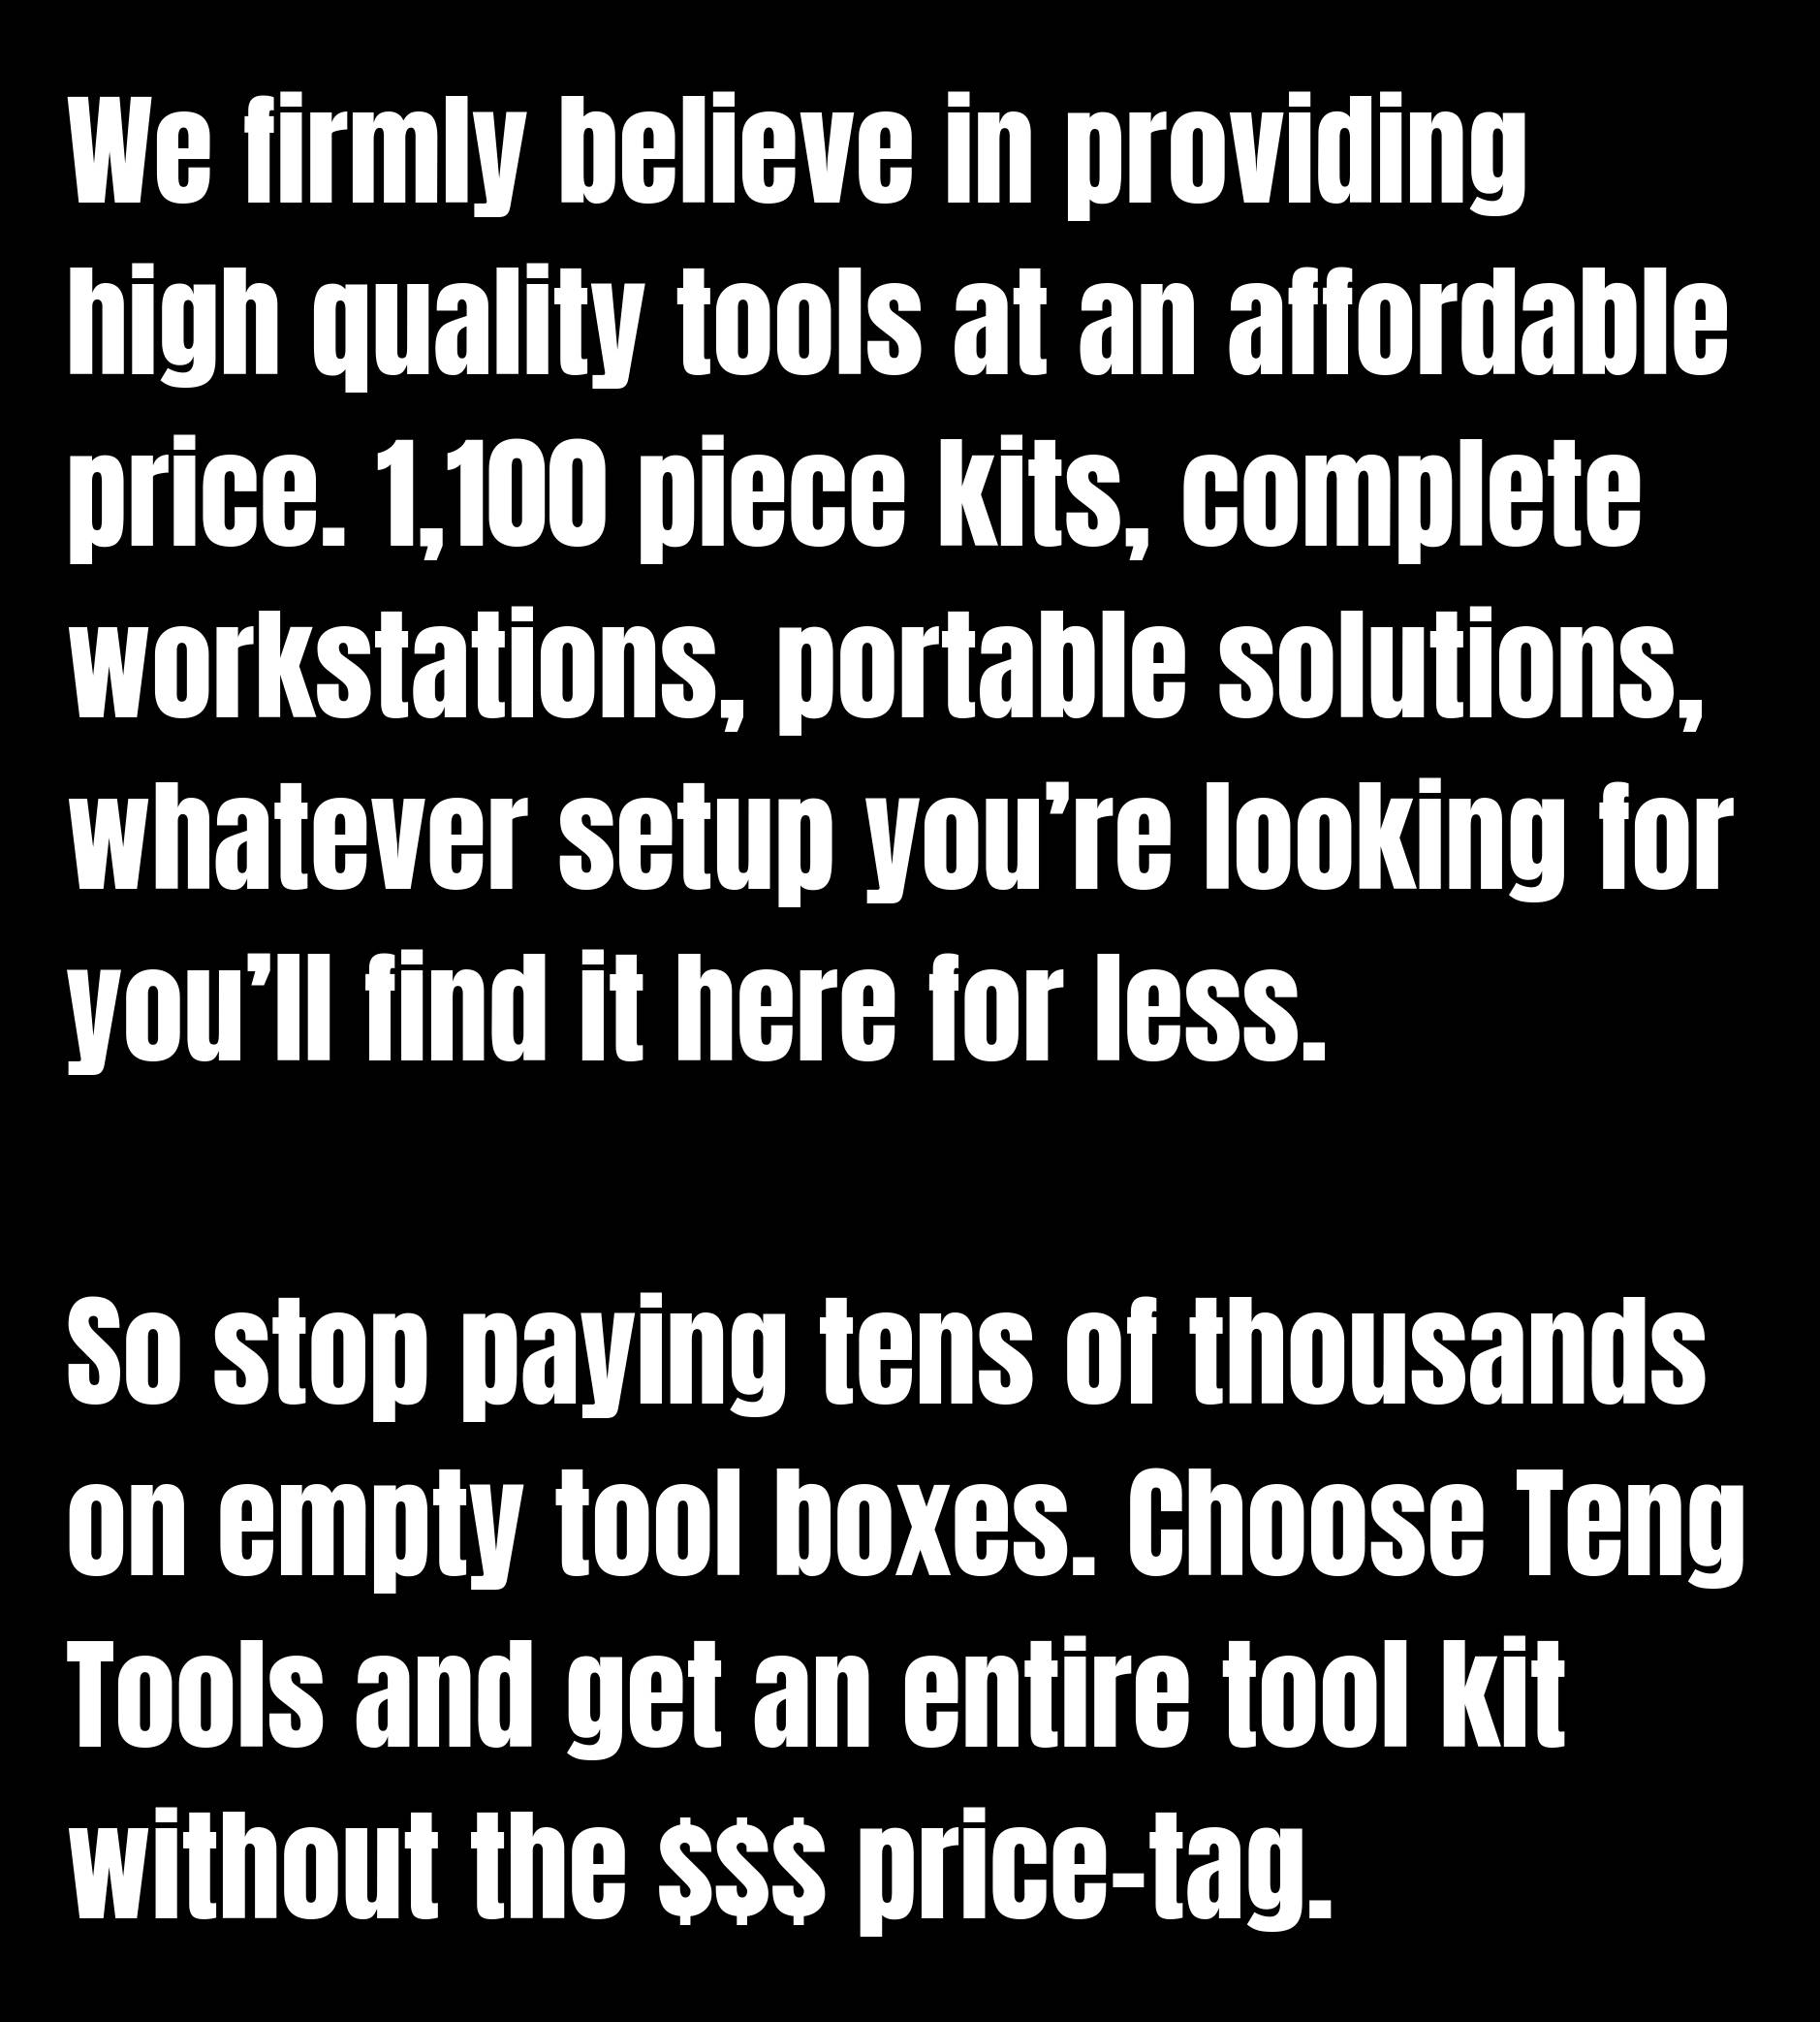 We firmly believe in providing high quality tools at an affordable price. 1,100 piece kits, complete workstations, portable solutions, whatever setup you're looking for you'll find it here for less.  So stop paying tens of thousands on empty tool boxes. Choose Teng Tools and get an entire tool kit without the $$$ price-tag.